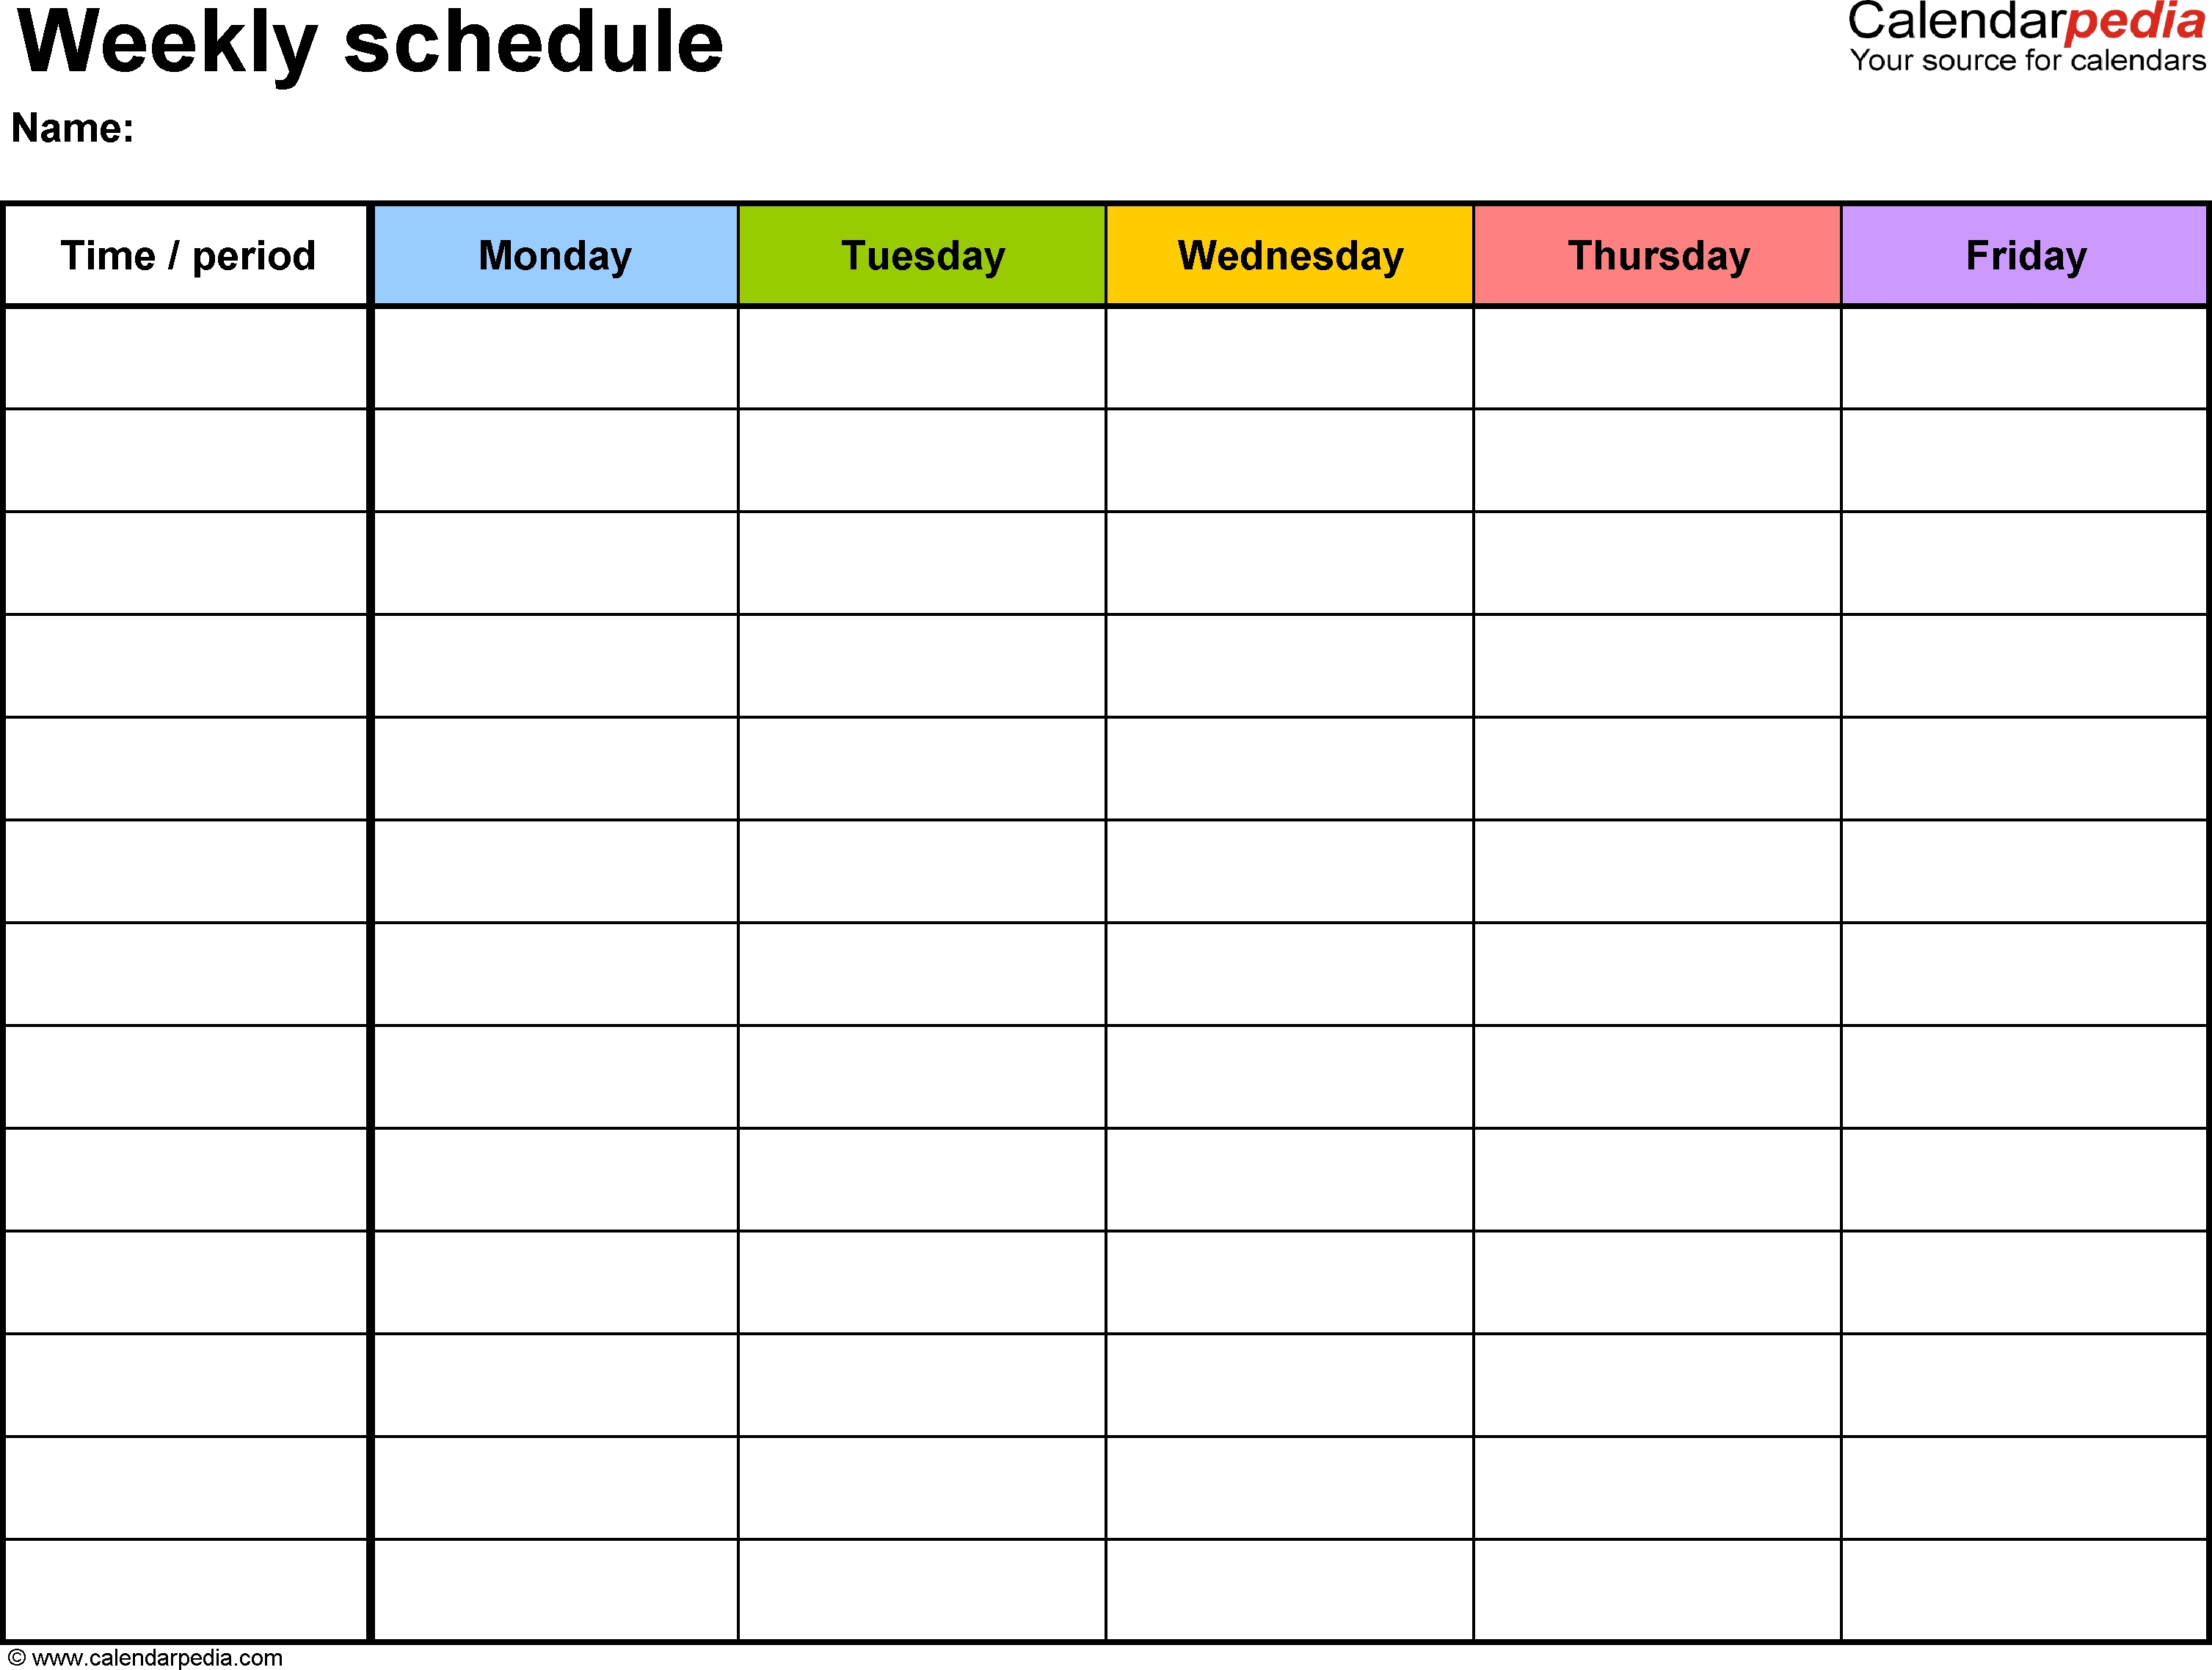 Free Weekly Schedule Templates For Excel - 18 Templates with Week By Week Calendar Printable